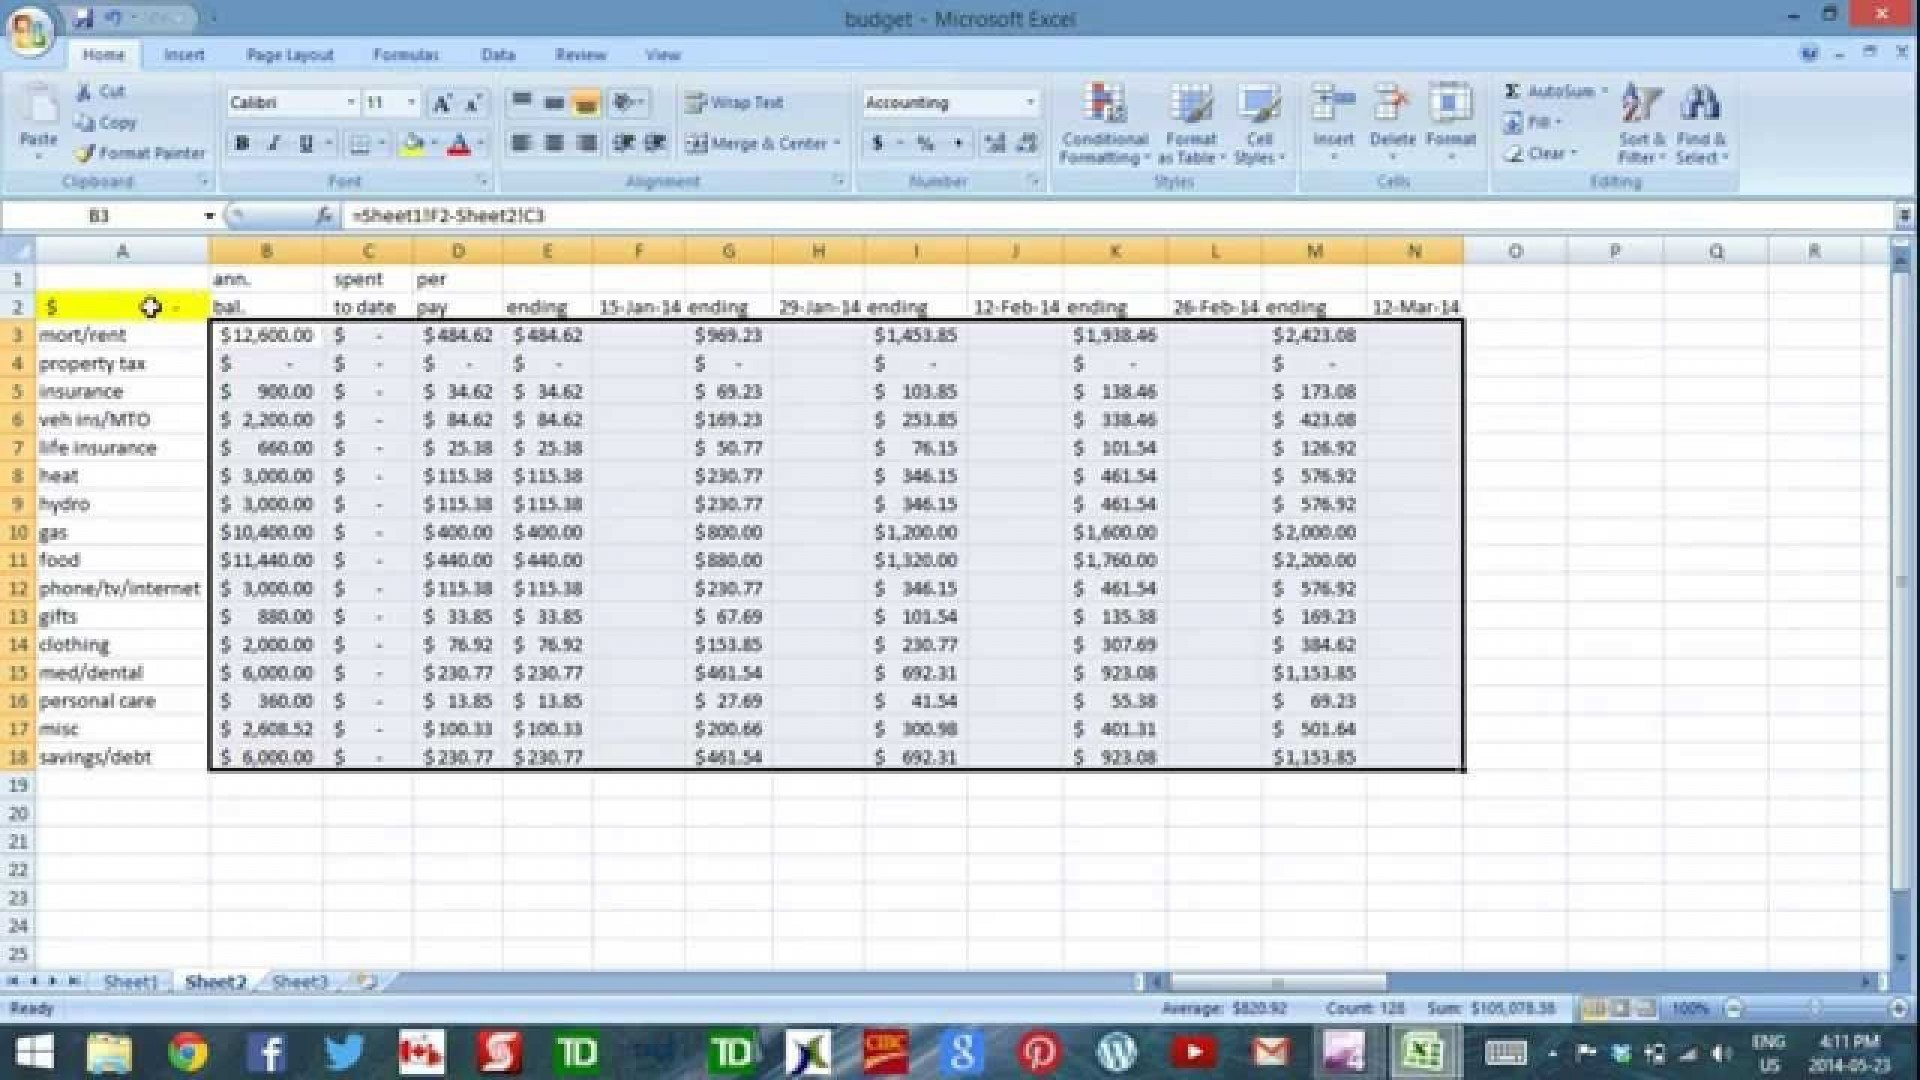 004 Awesome Cash Flow Template Excel Sample  2007 Download1920